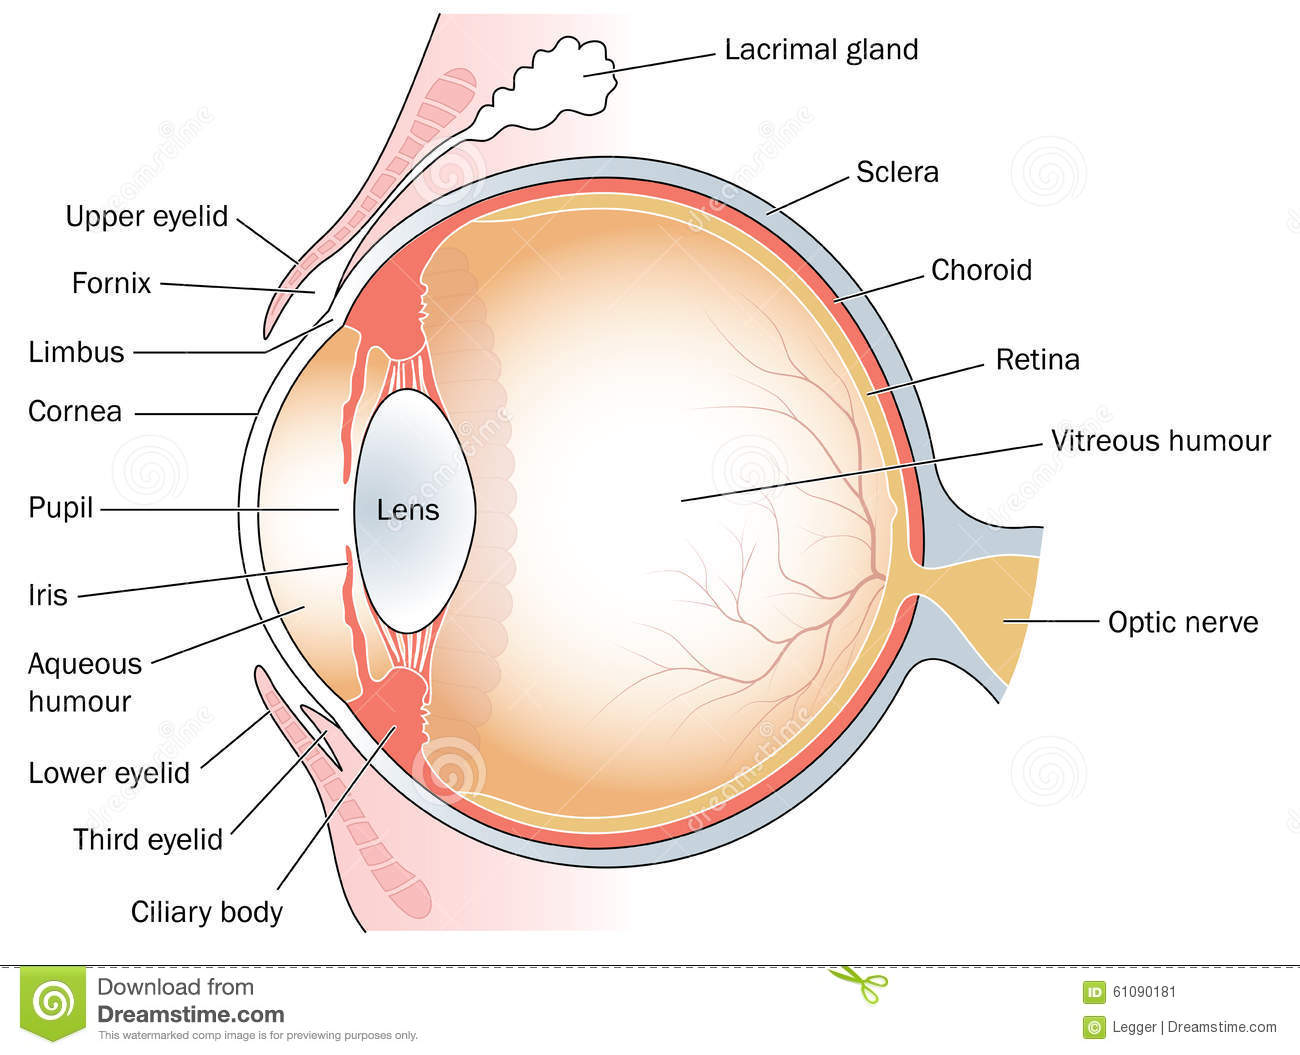 parts of the eyelid diagram 2006 harley davidson radio wiring cross section through eye stock vector illustration choroid and eyelids including lacrimal gland third created in adobe illustrator contains transparent objects